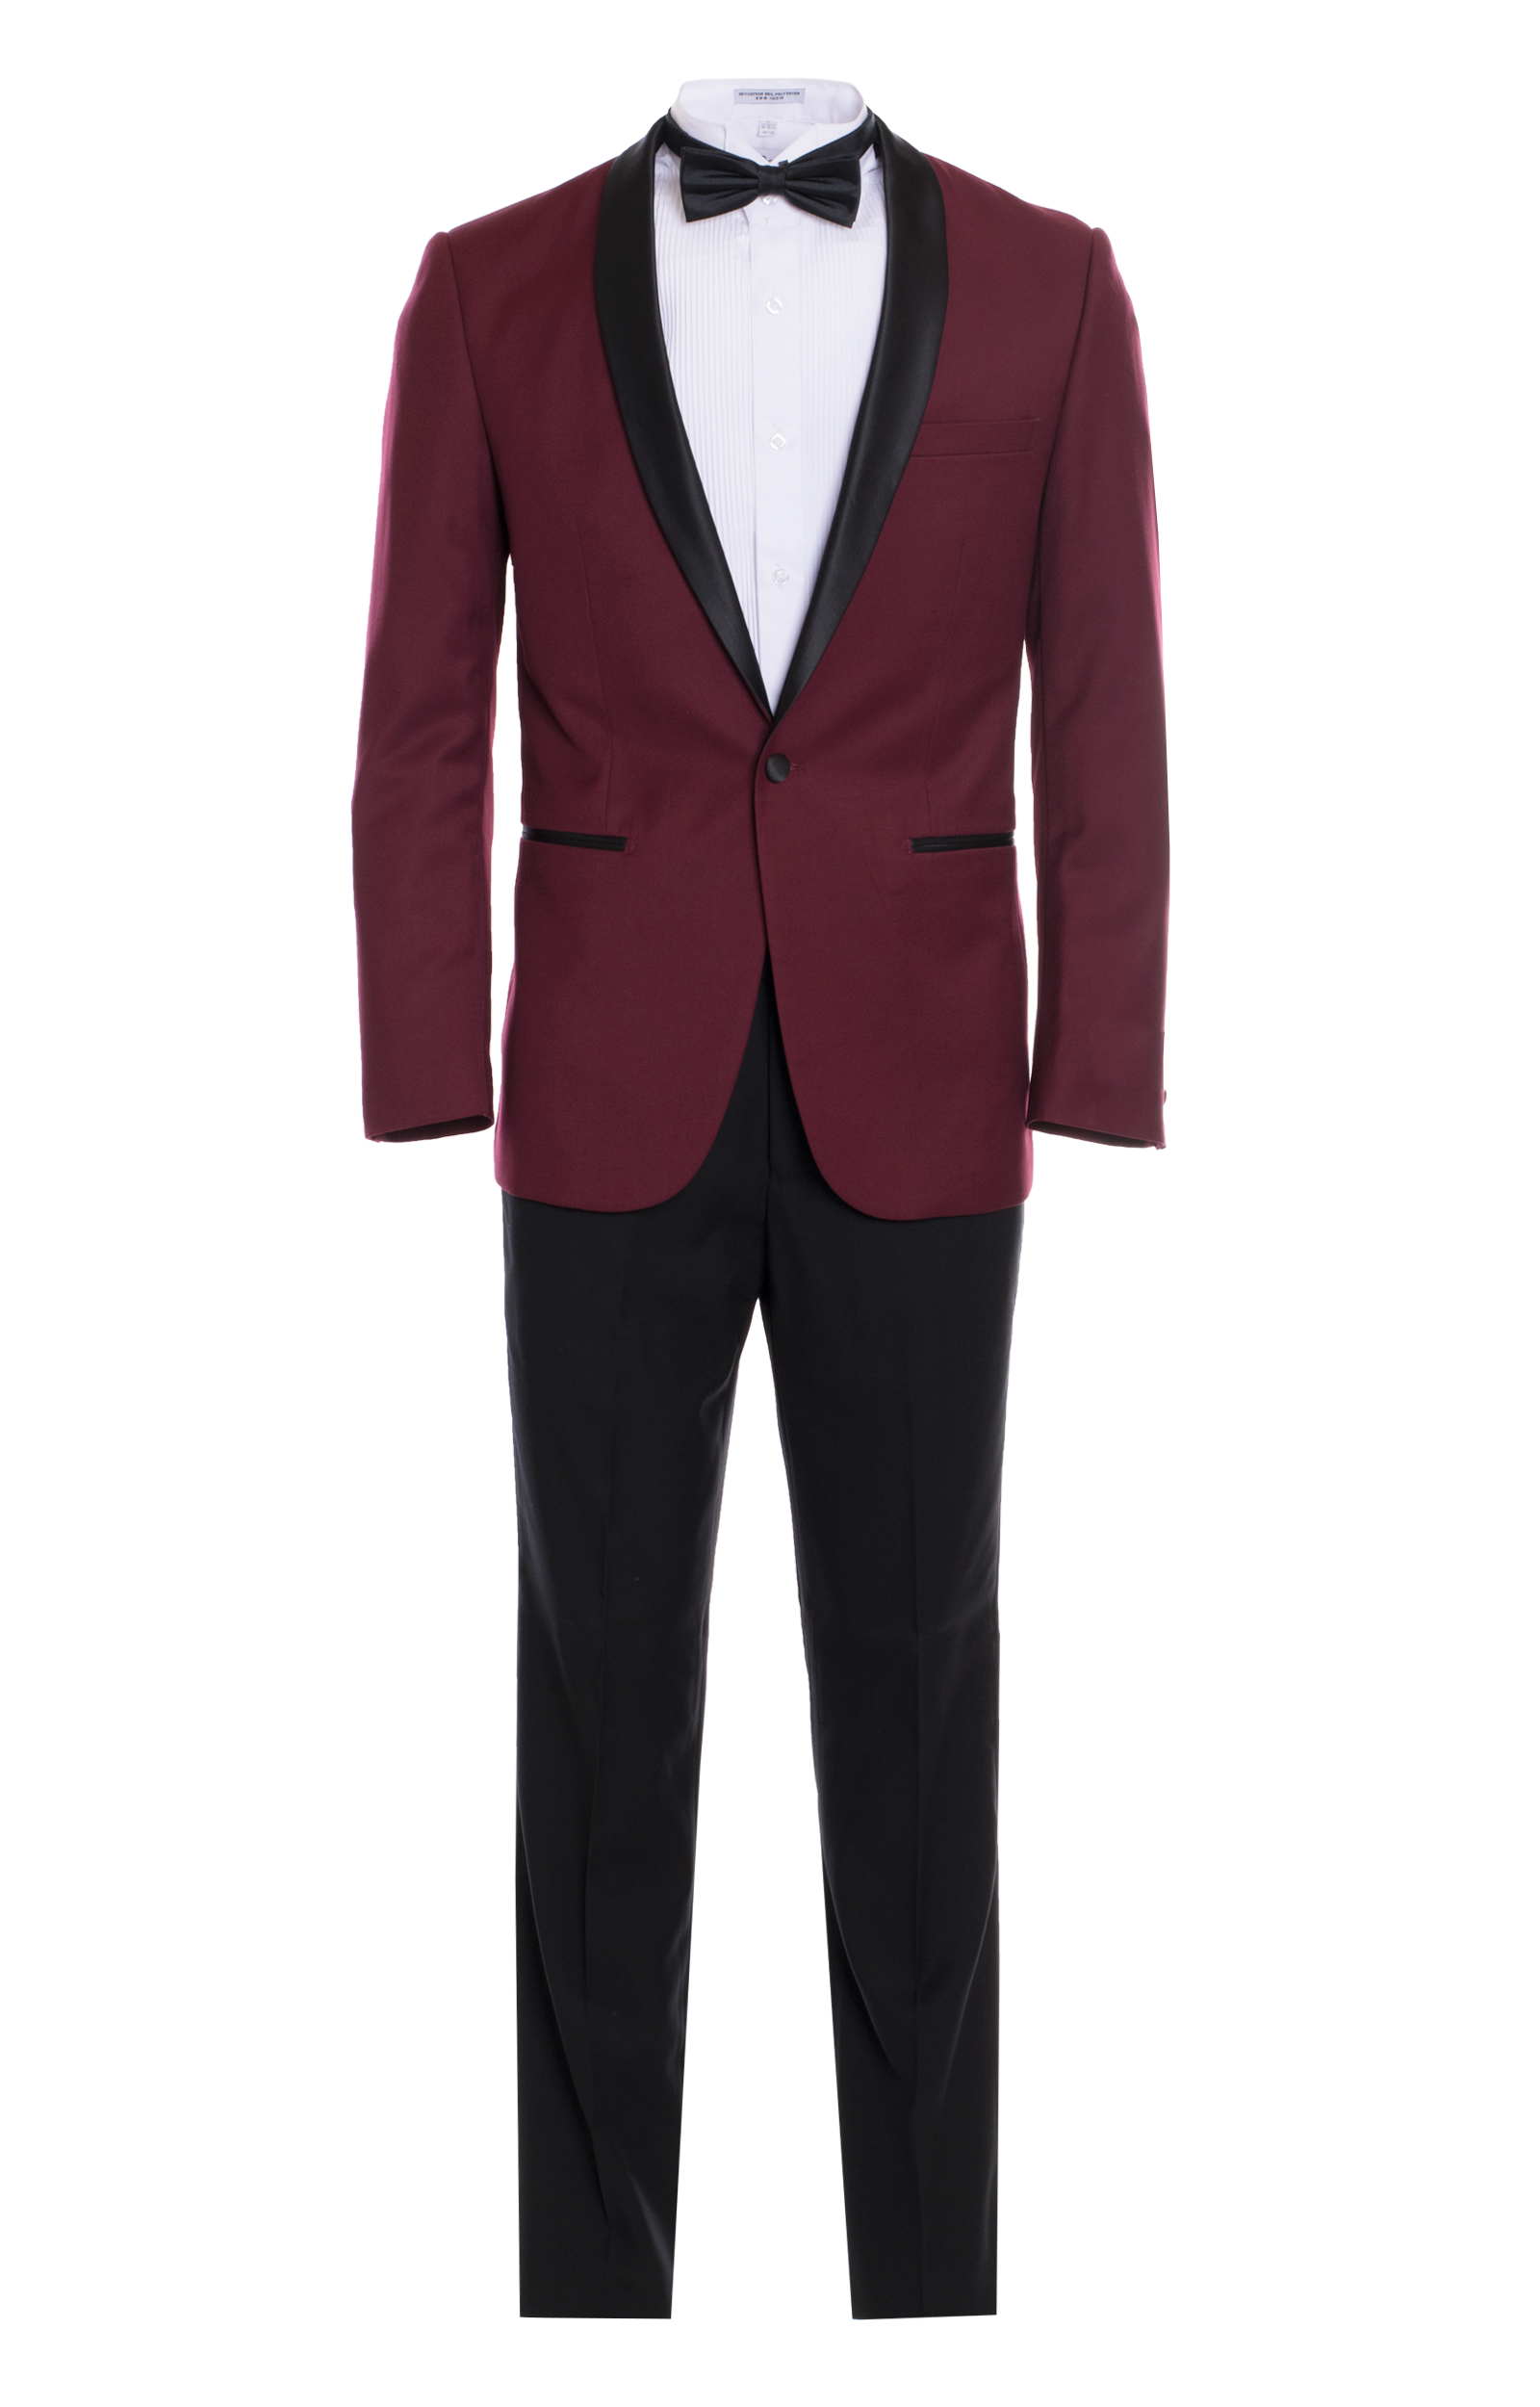 Men 39 s premium slim fit shawl lapel tuxedos color burgundy for Black suit burgundy shirt